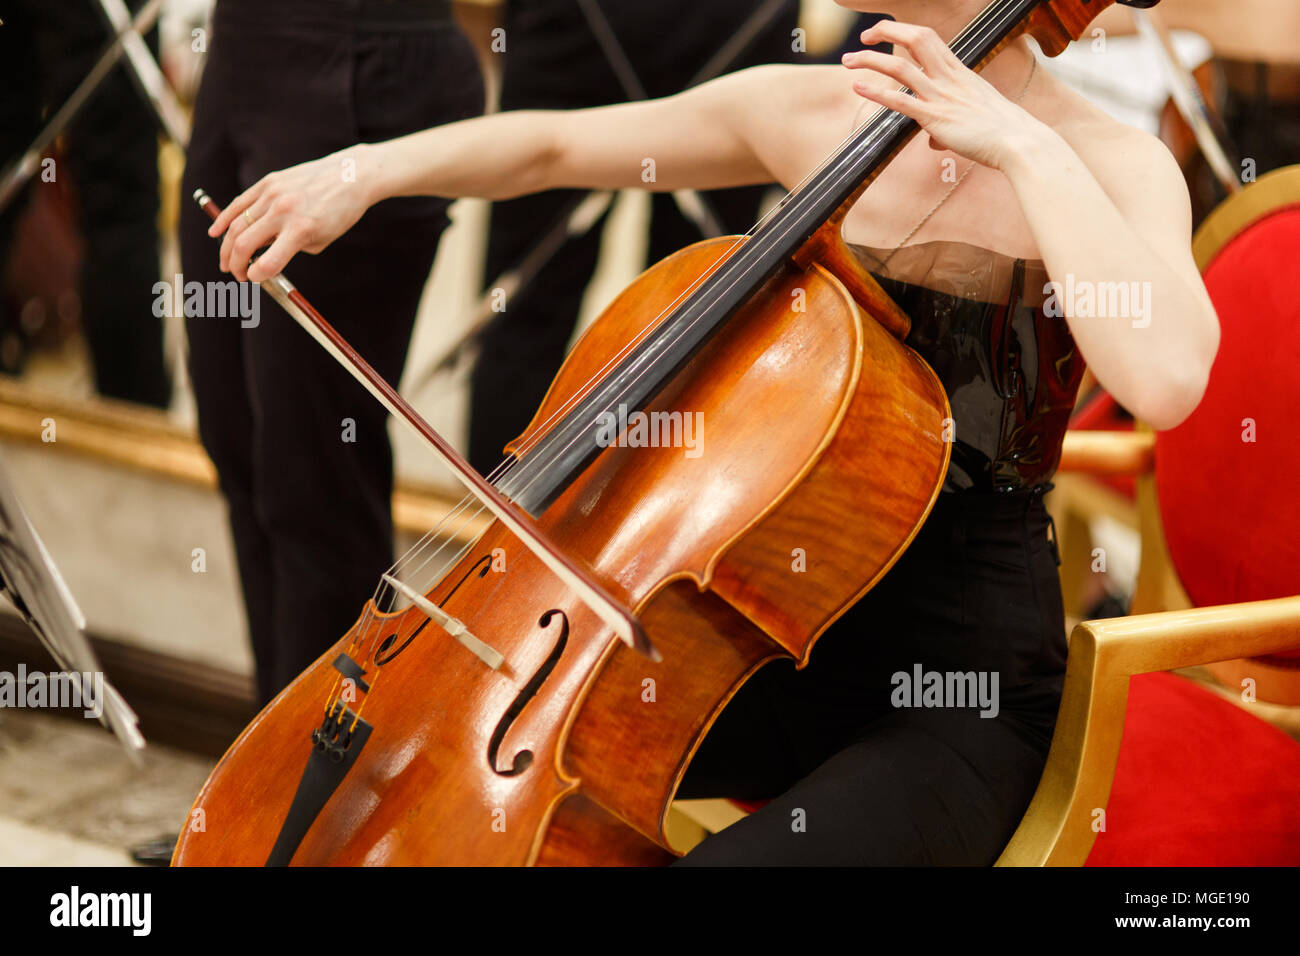 Photo of woman playing cello - Stock Image